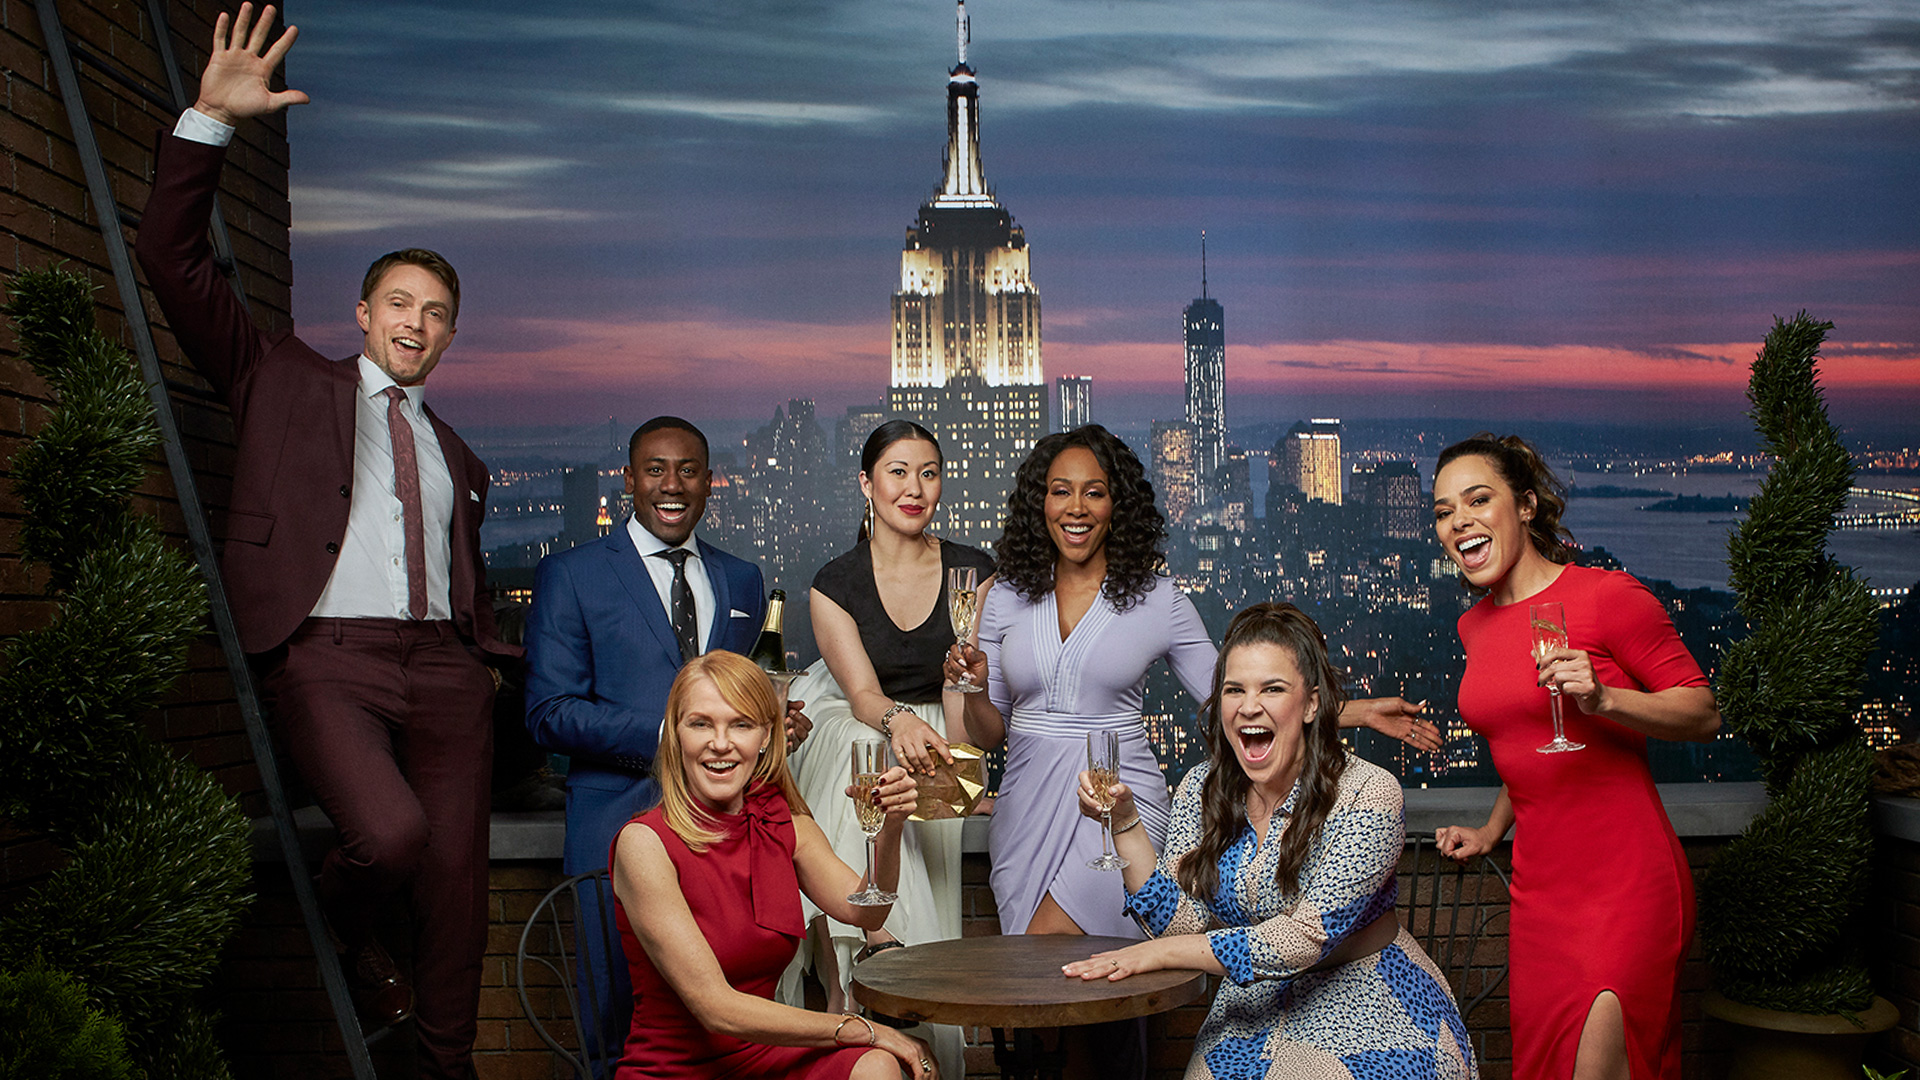 All Rise: Wilson Bethel, J. Alex Brinson, Marg Helgenberger, Ruthie Ann Miles, Simone Missick, Lindsay Mendez, and Jessica Camacho